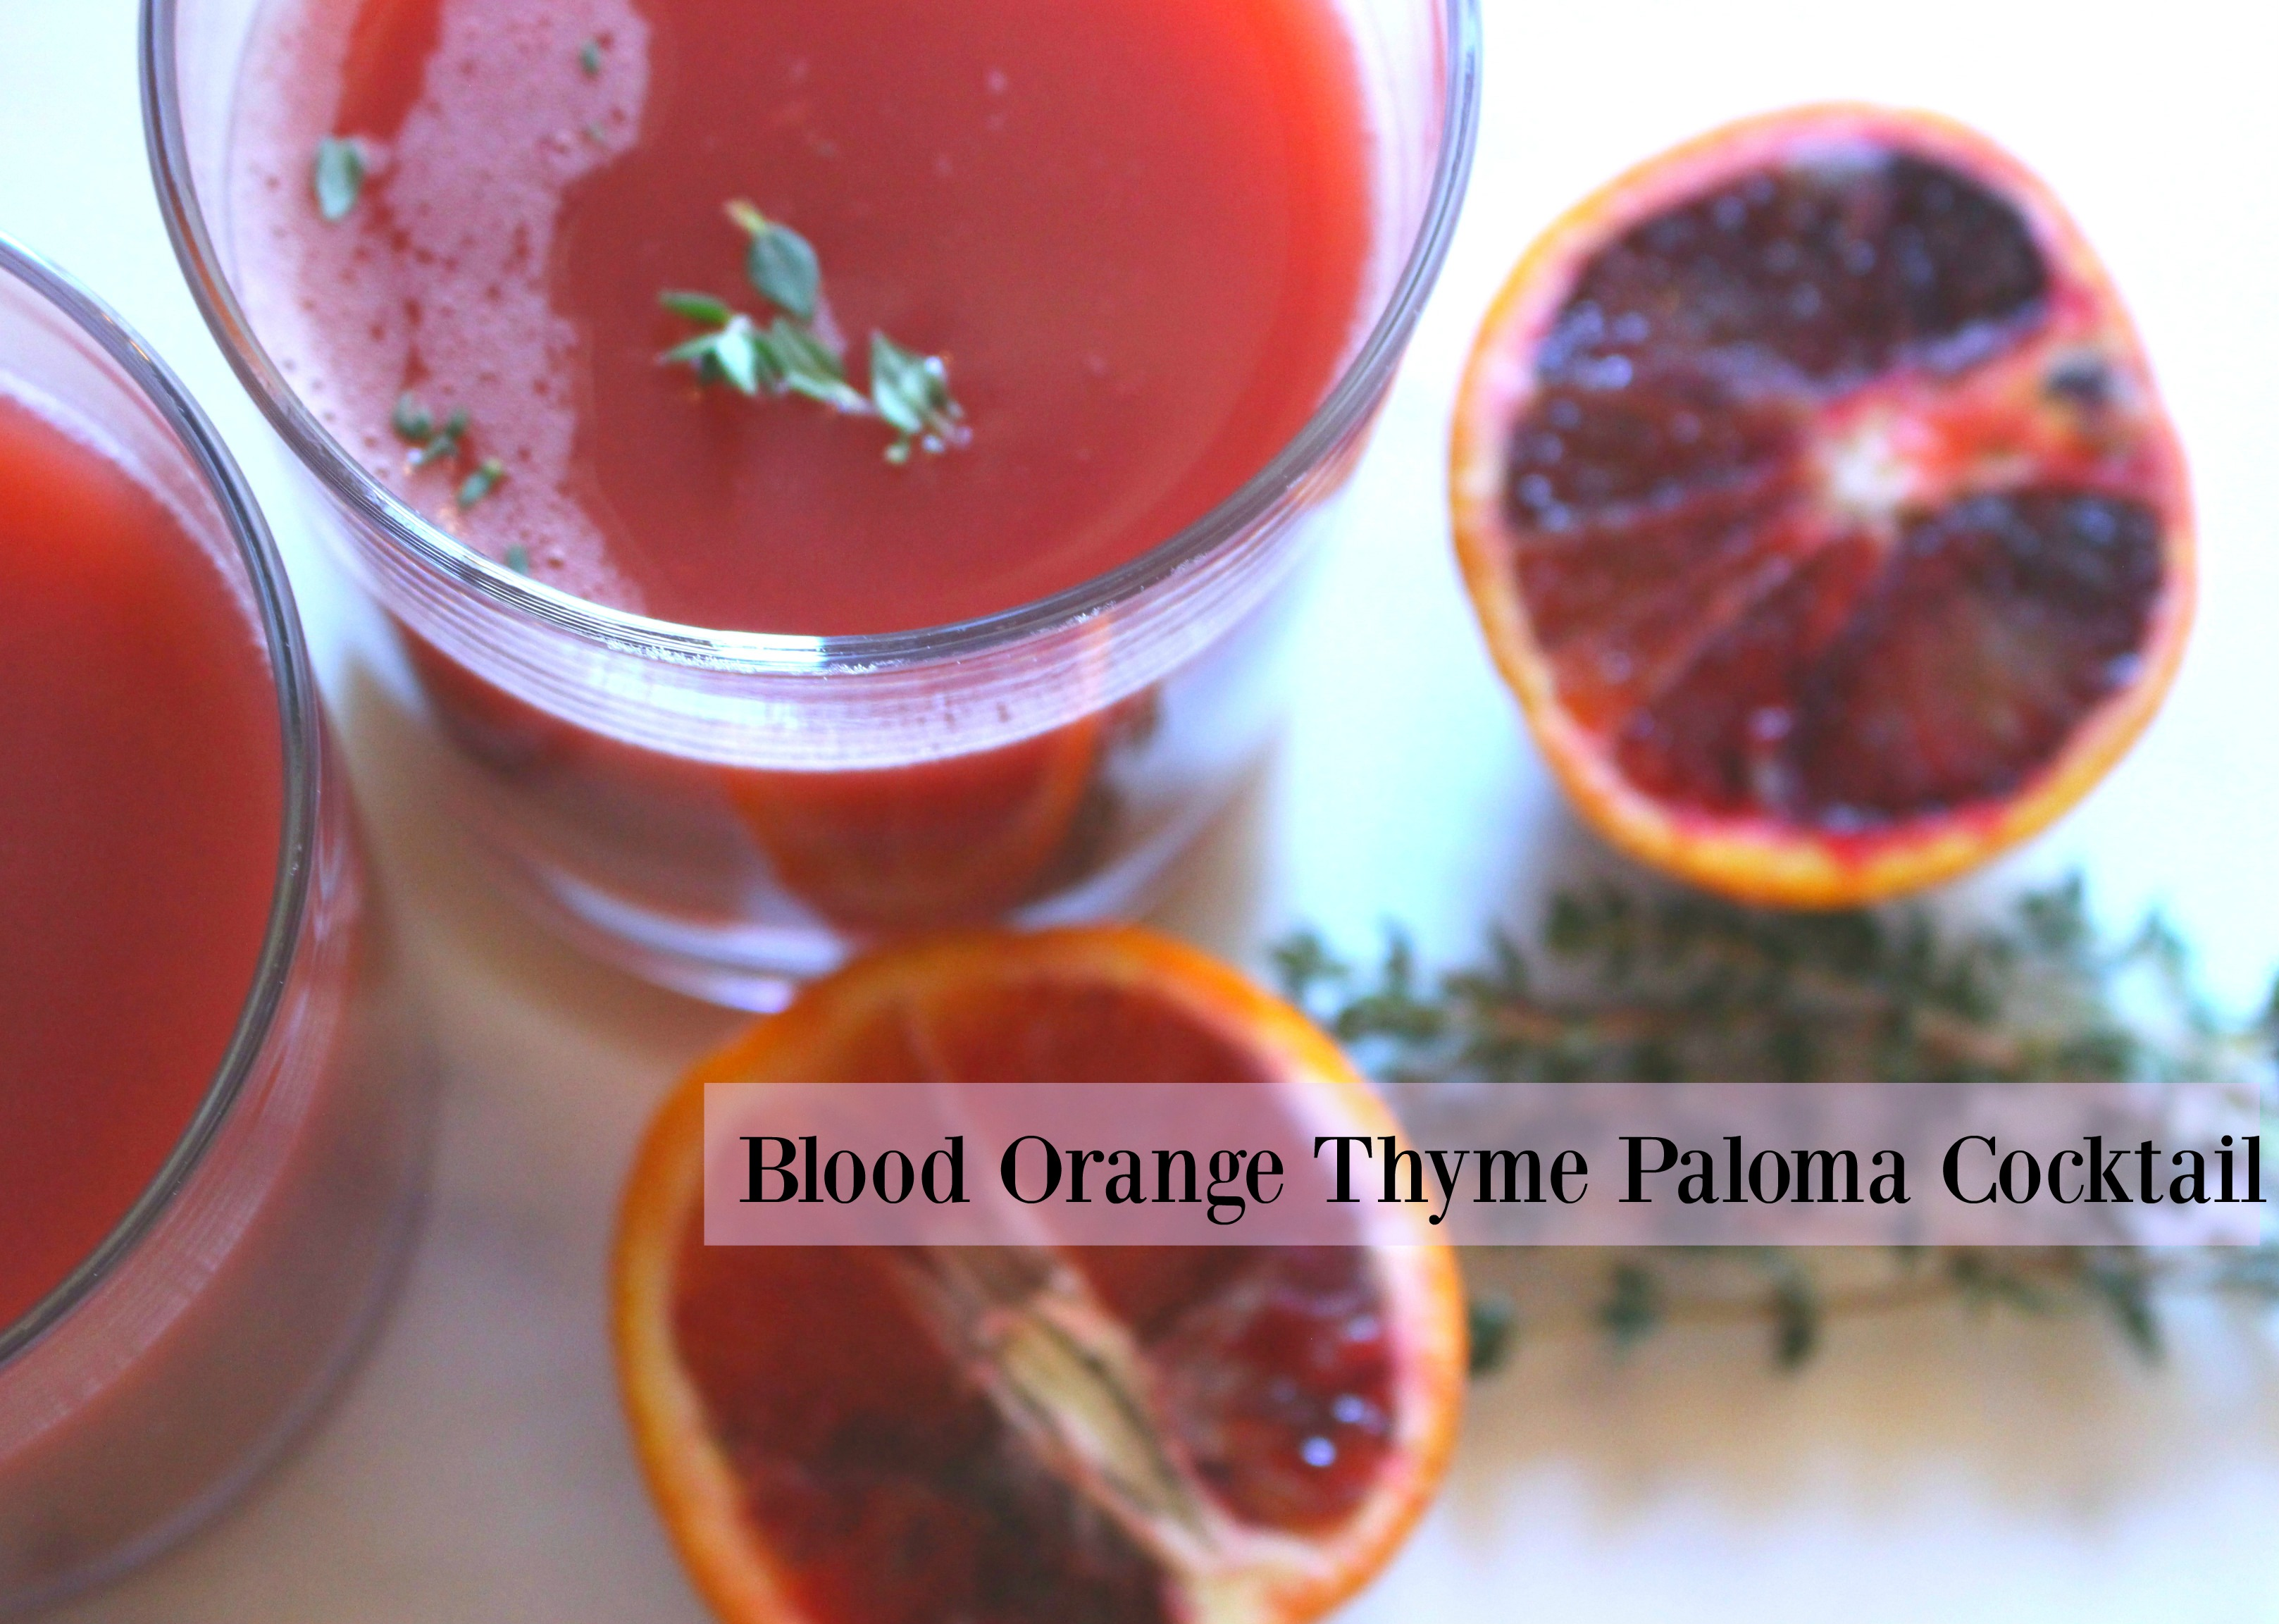 Blood Orange Thyme Paloma Cocktail Recipe + B4 Giveaway